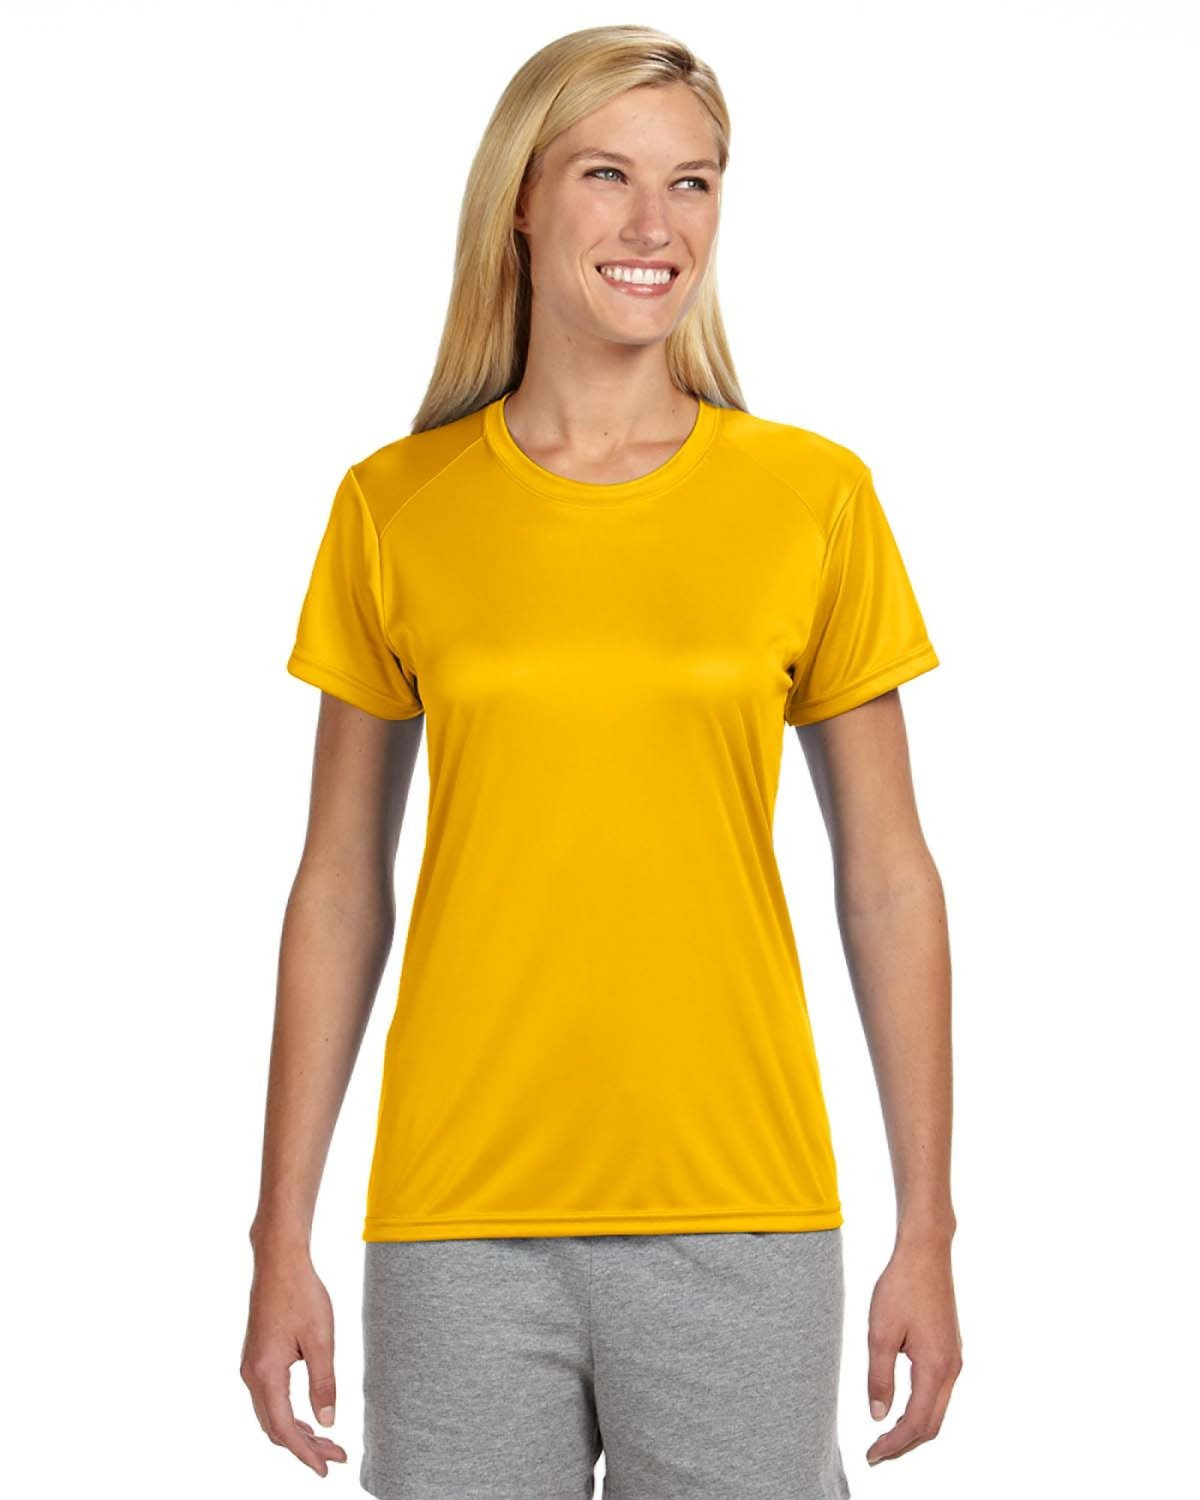 A4 Ladies' Cooling Performance T-Shirt GOLD